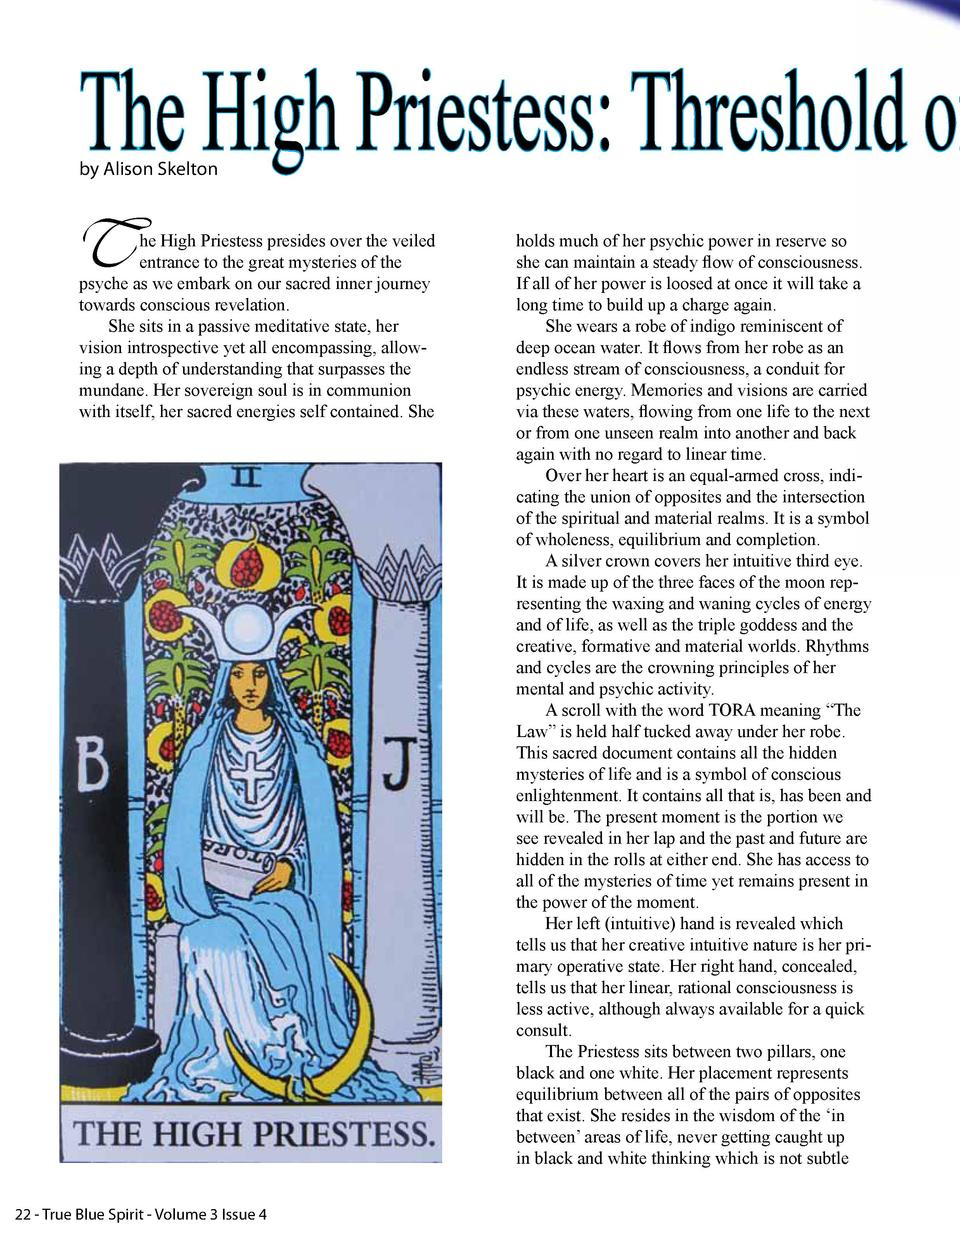 The High Priestess  Threshold of by Alison Skelton  T  he High Priestess presides over the veiled entrance to the great my...